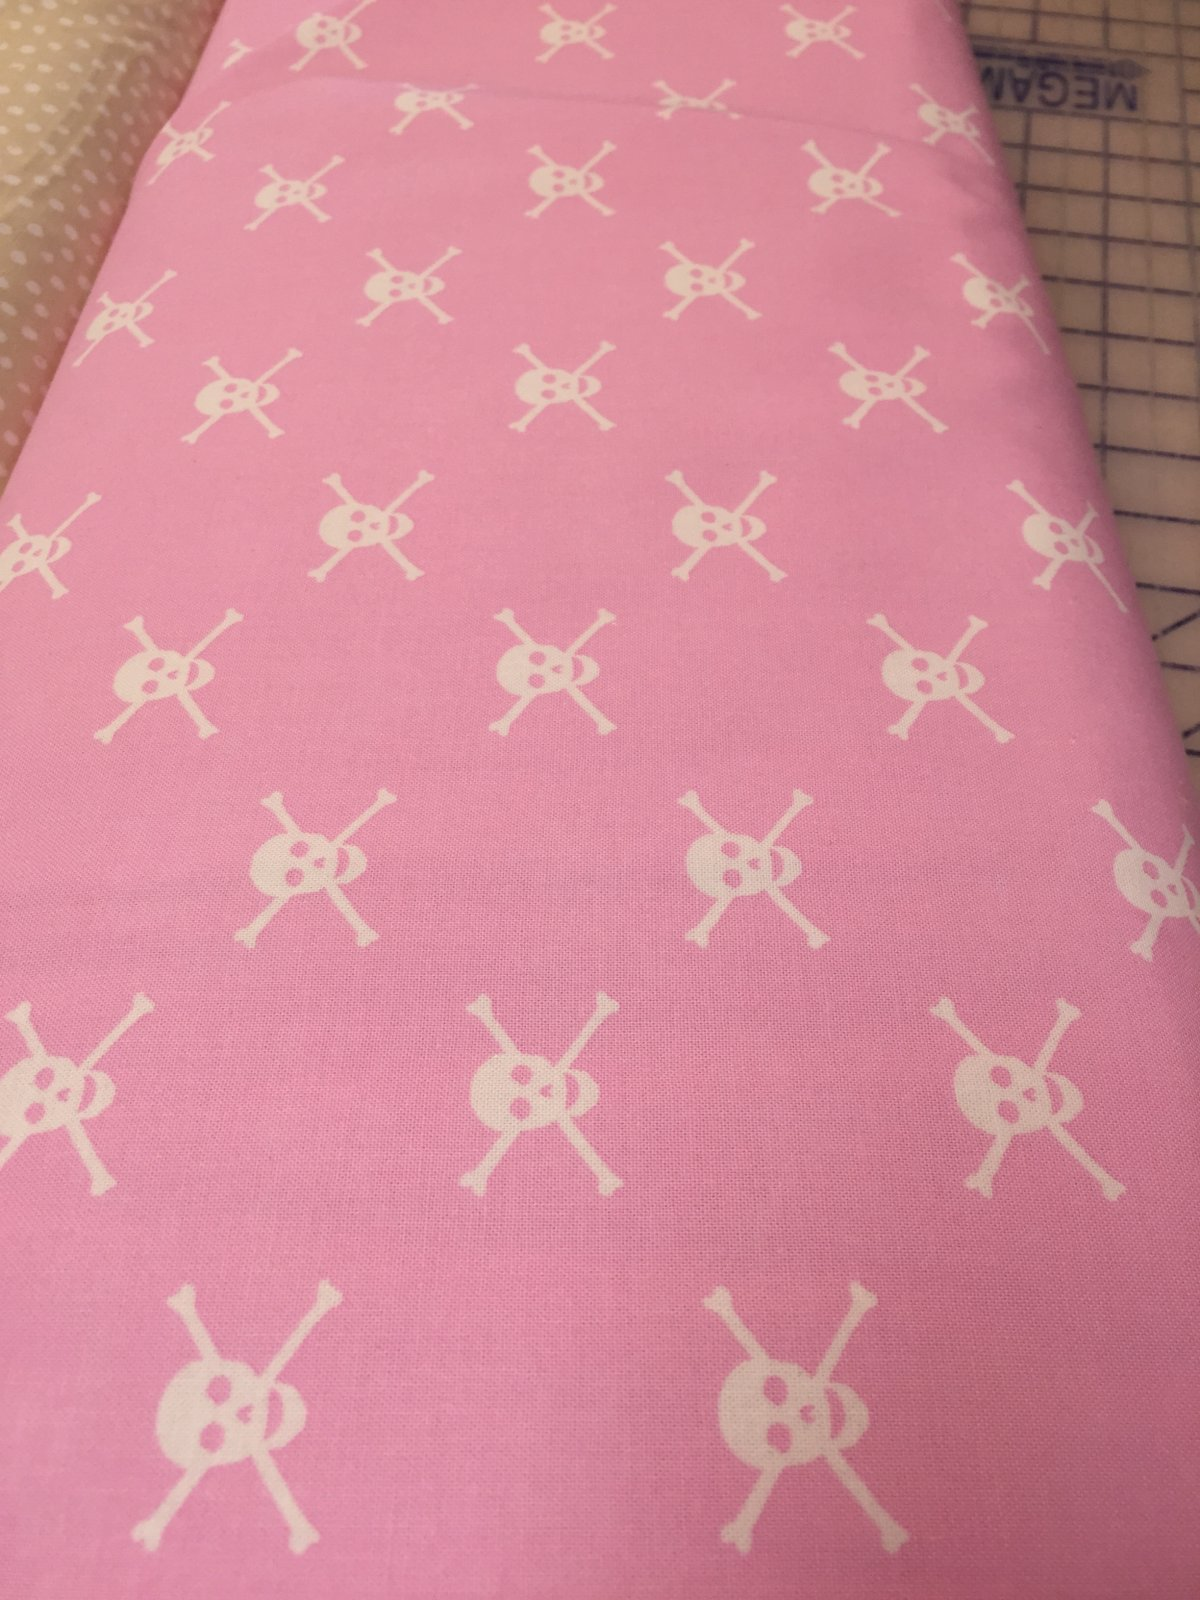 Pink with White Skulls